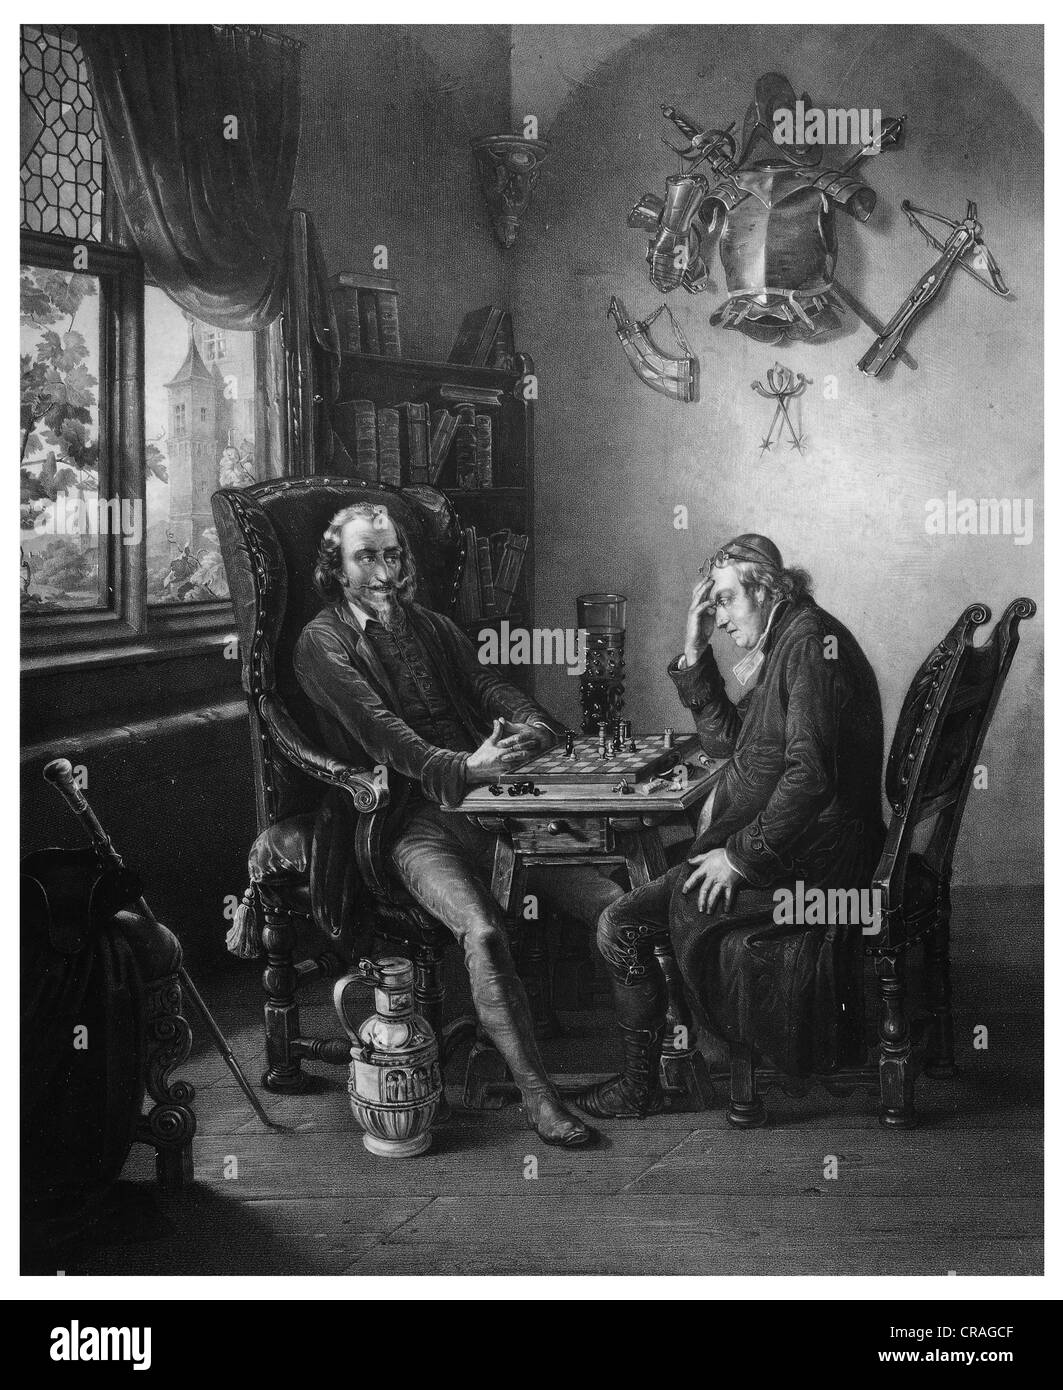 Chess players, historical engraving from 1852 - Stock Image